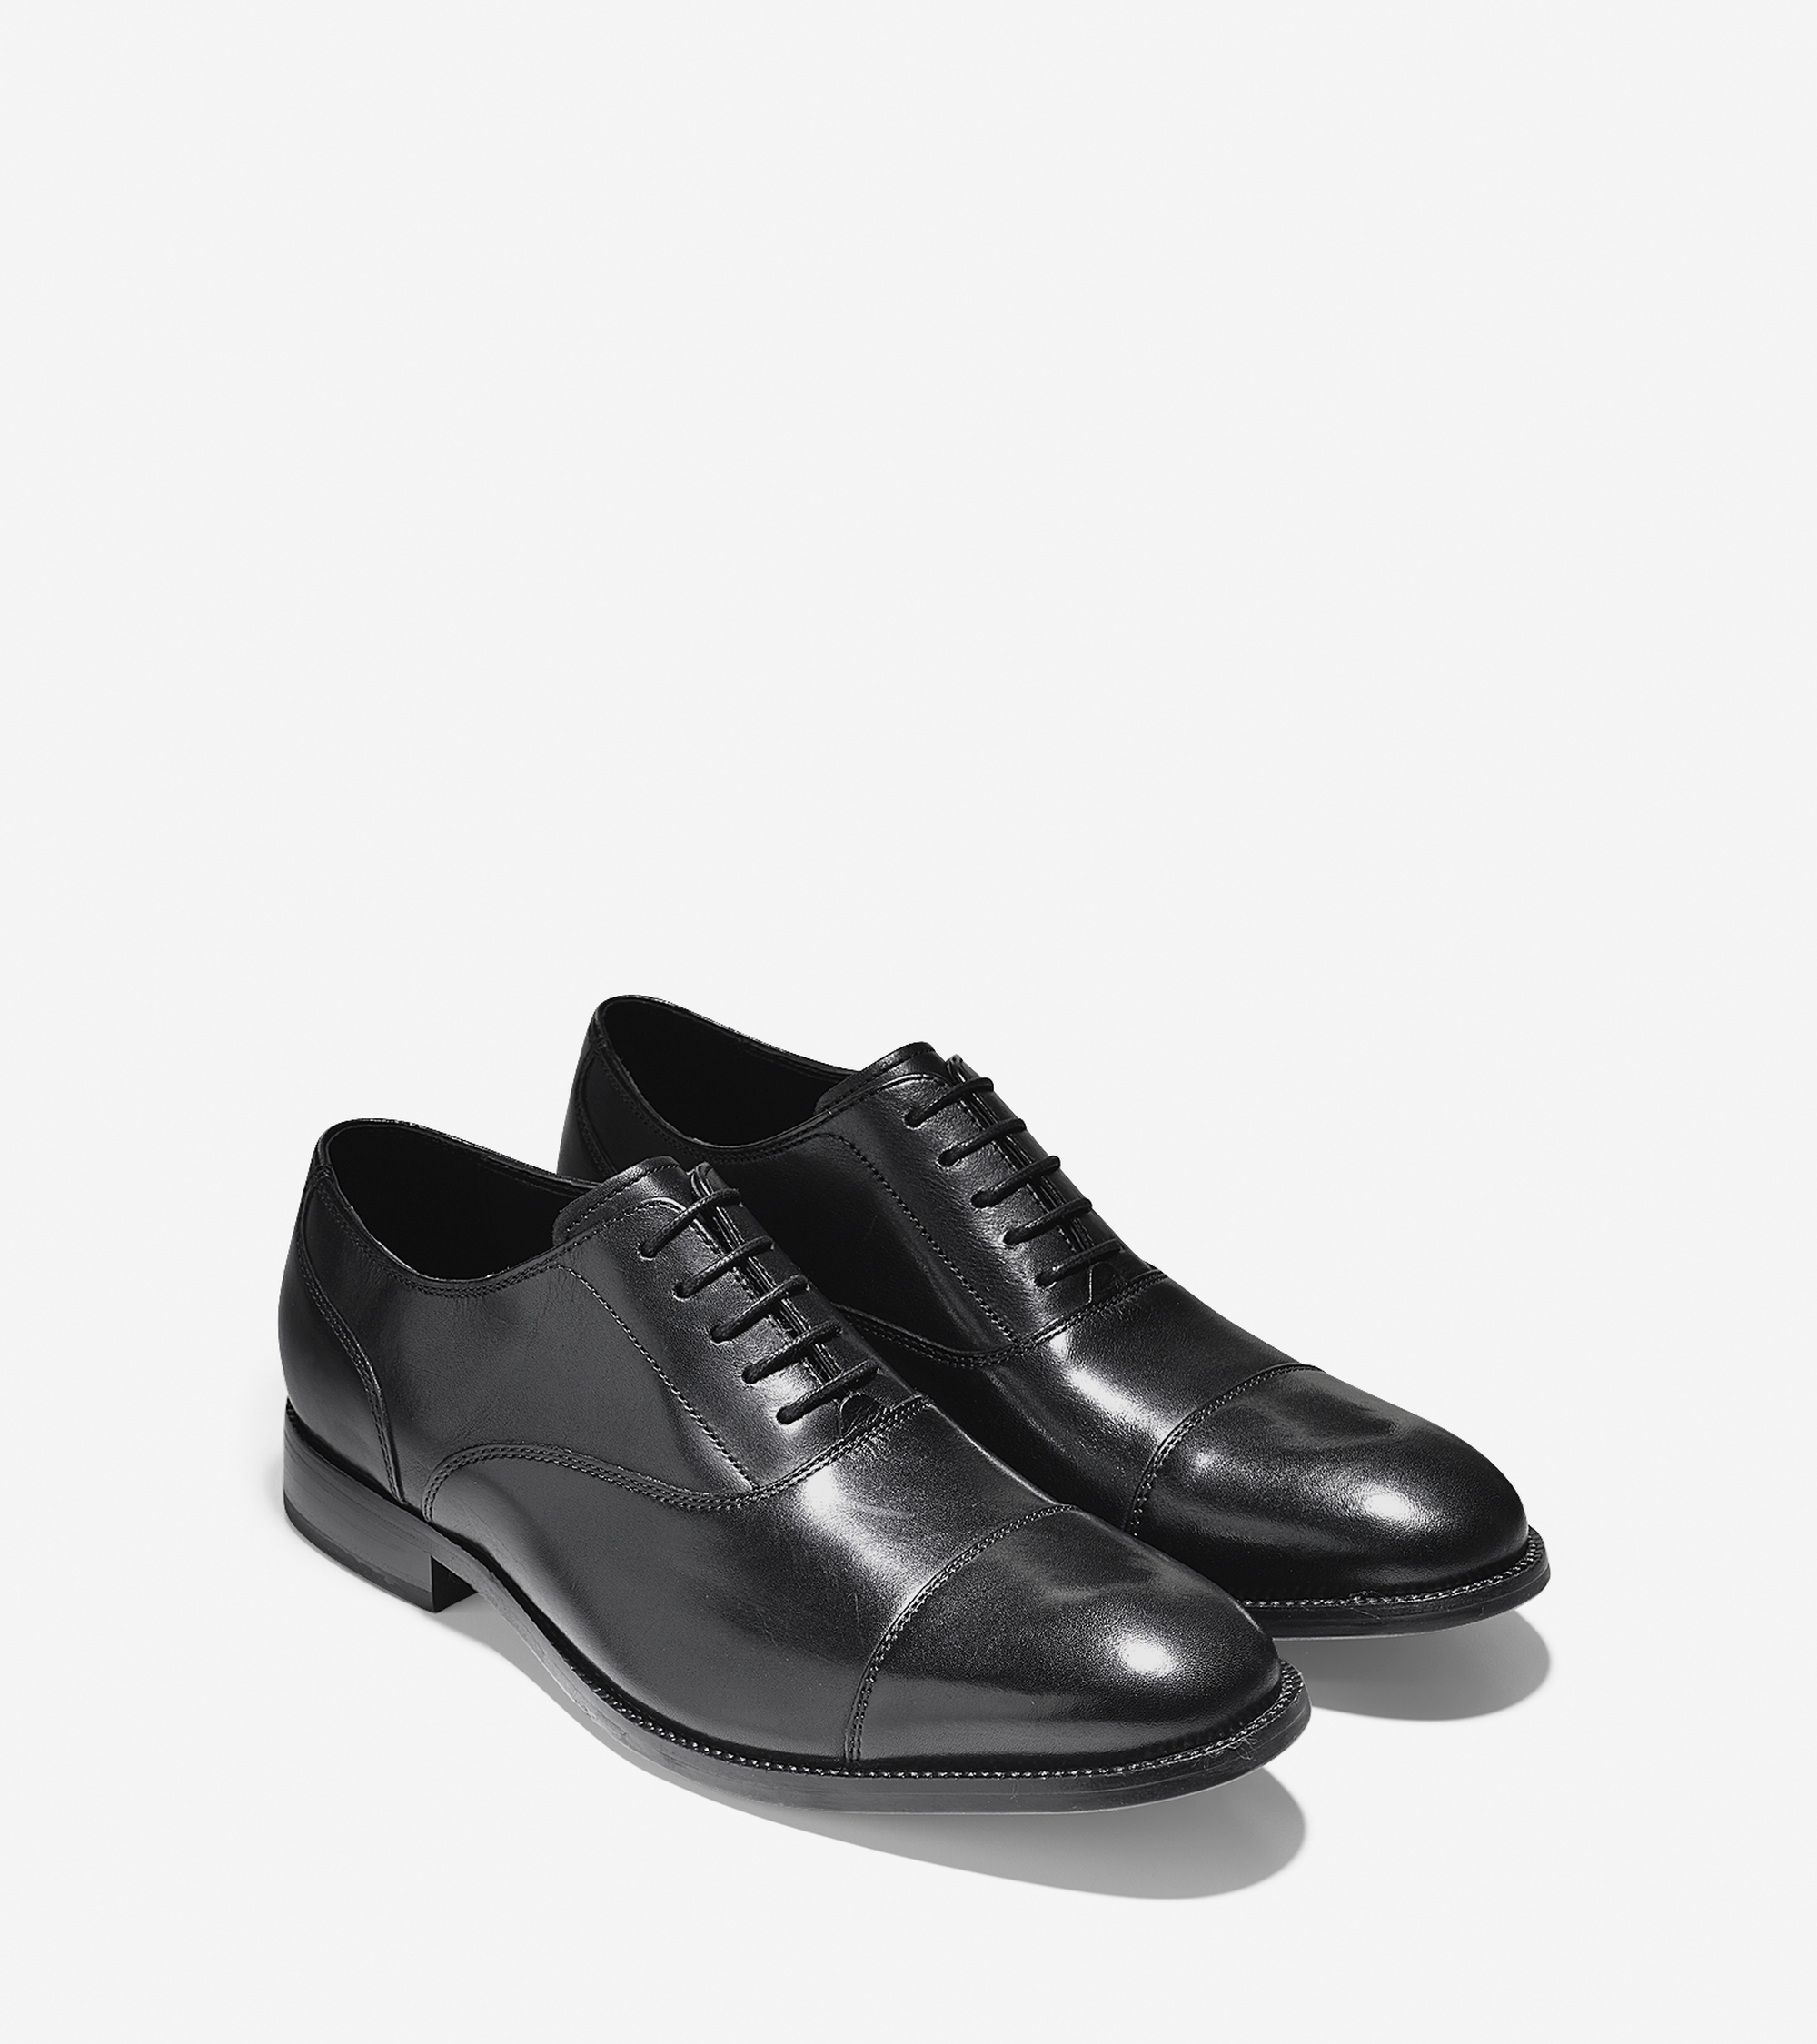 Cole Haan Williams Cap Toe Oxford In Black For Men Lyst